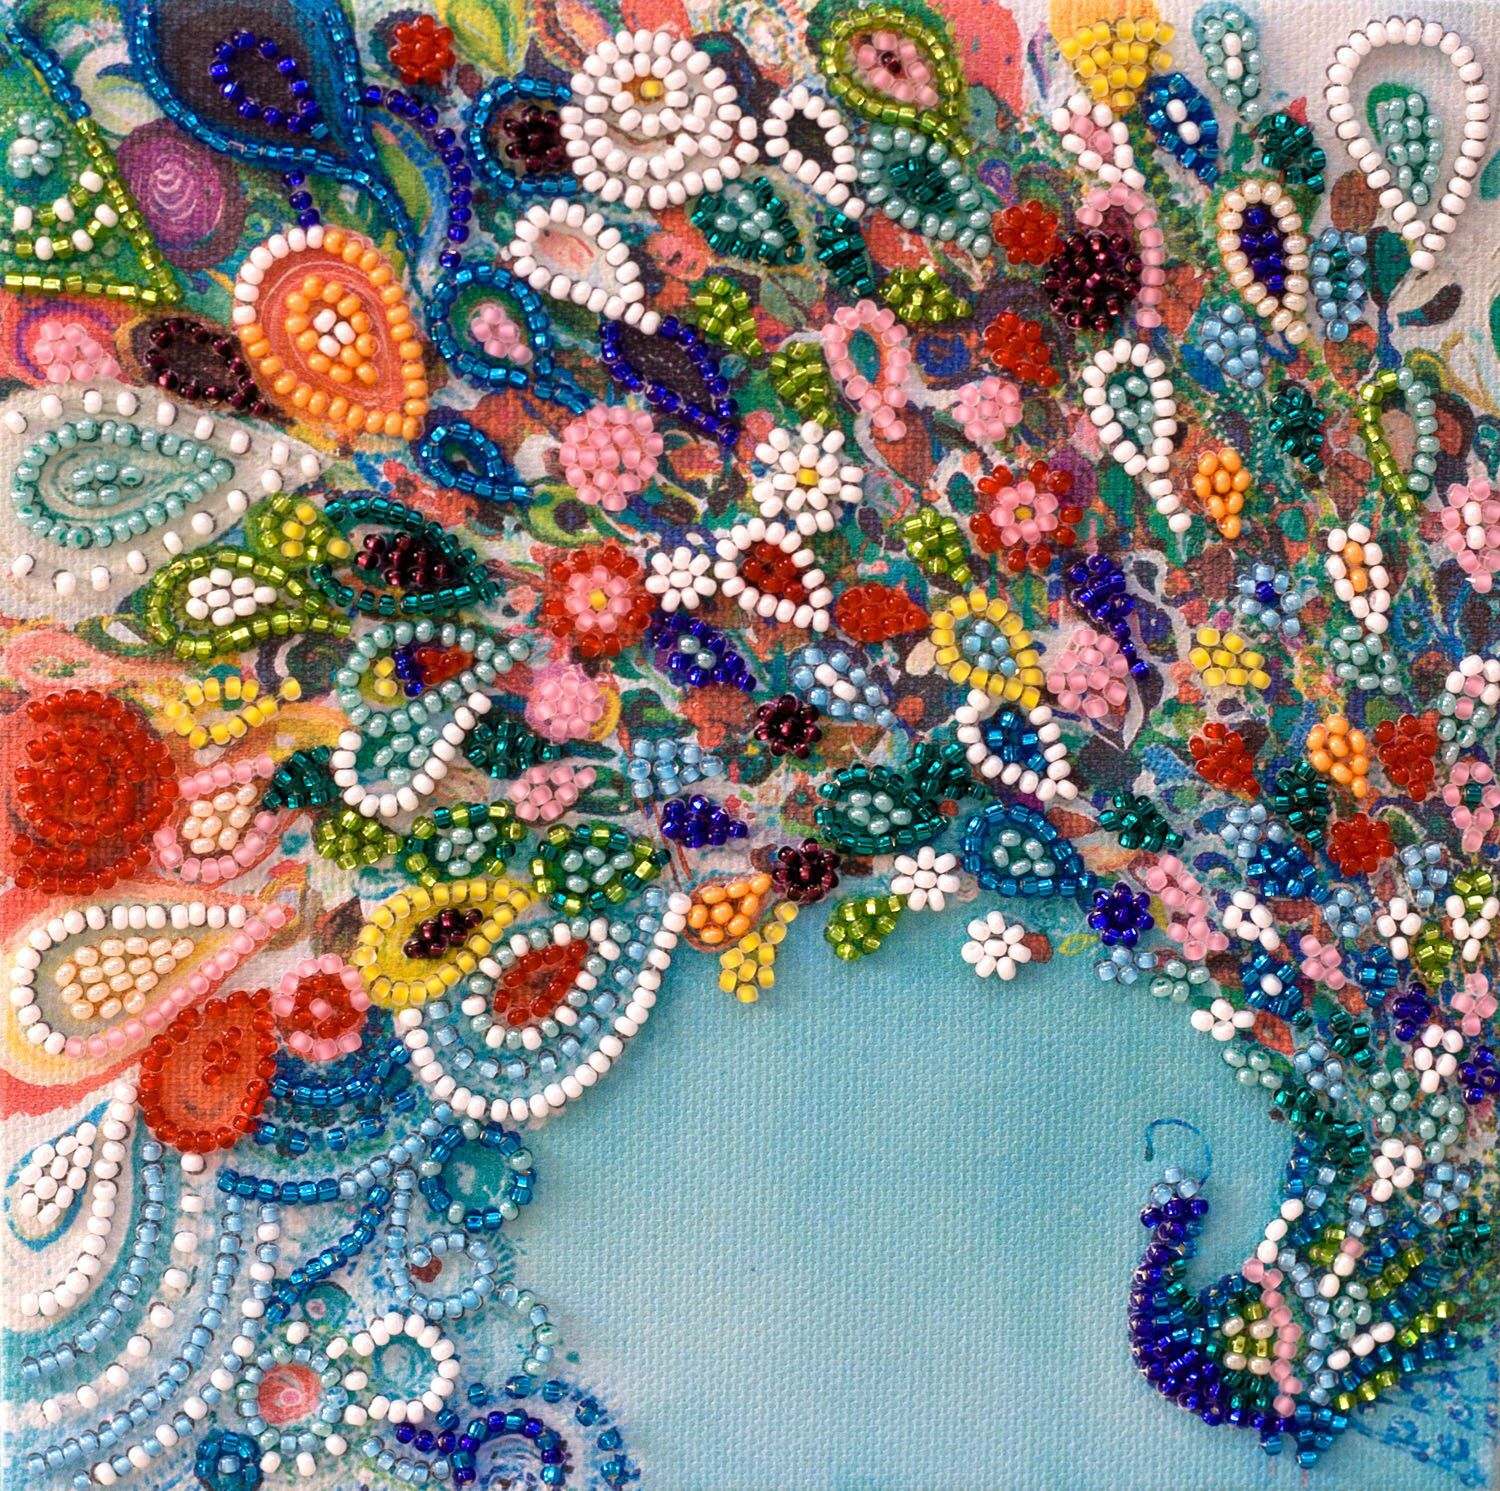 35+ Bead craft picture kits information